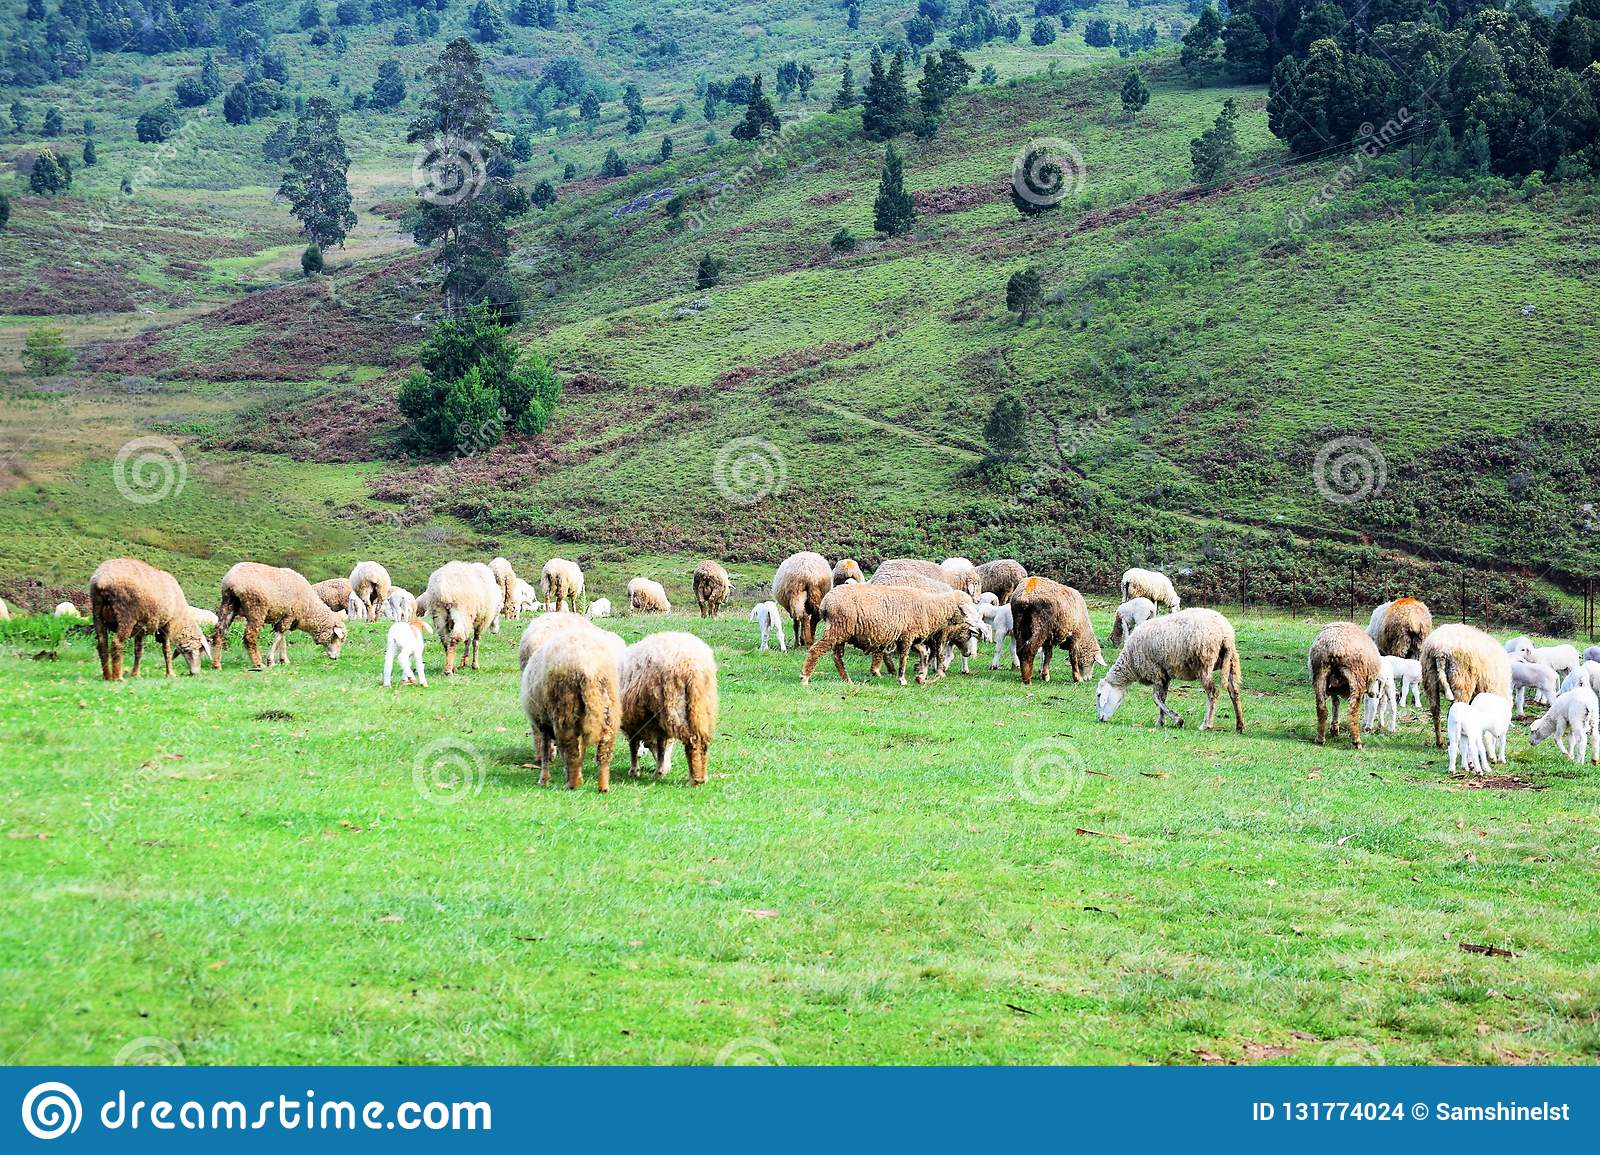 It is a beautiful sheep farm houselocated in mannavanurkodaikanal tamilnaduindia beautiful grass valley and the lake view also nice place to spend time